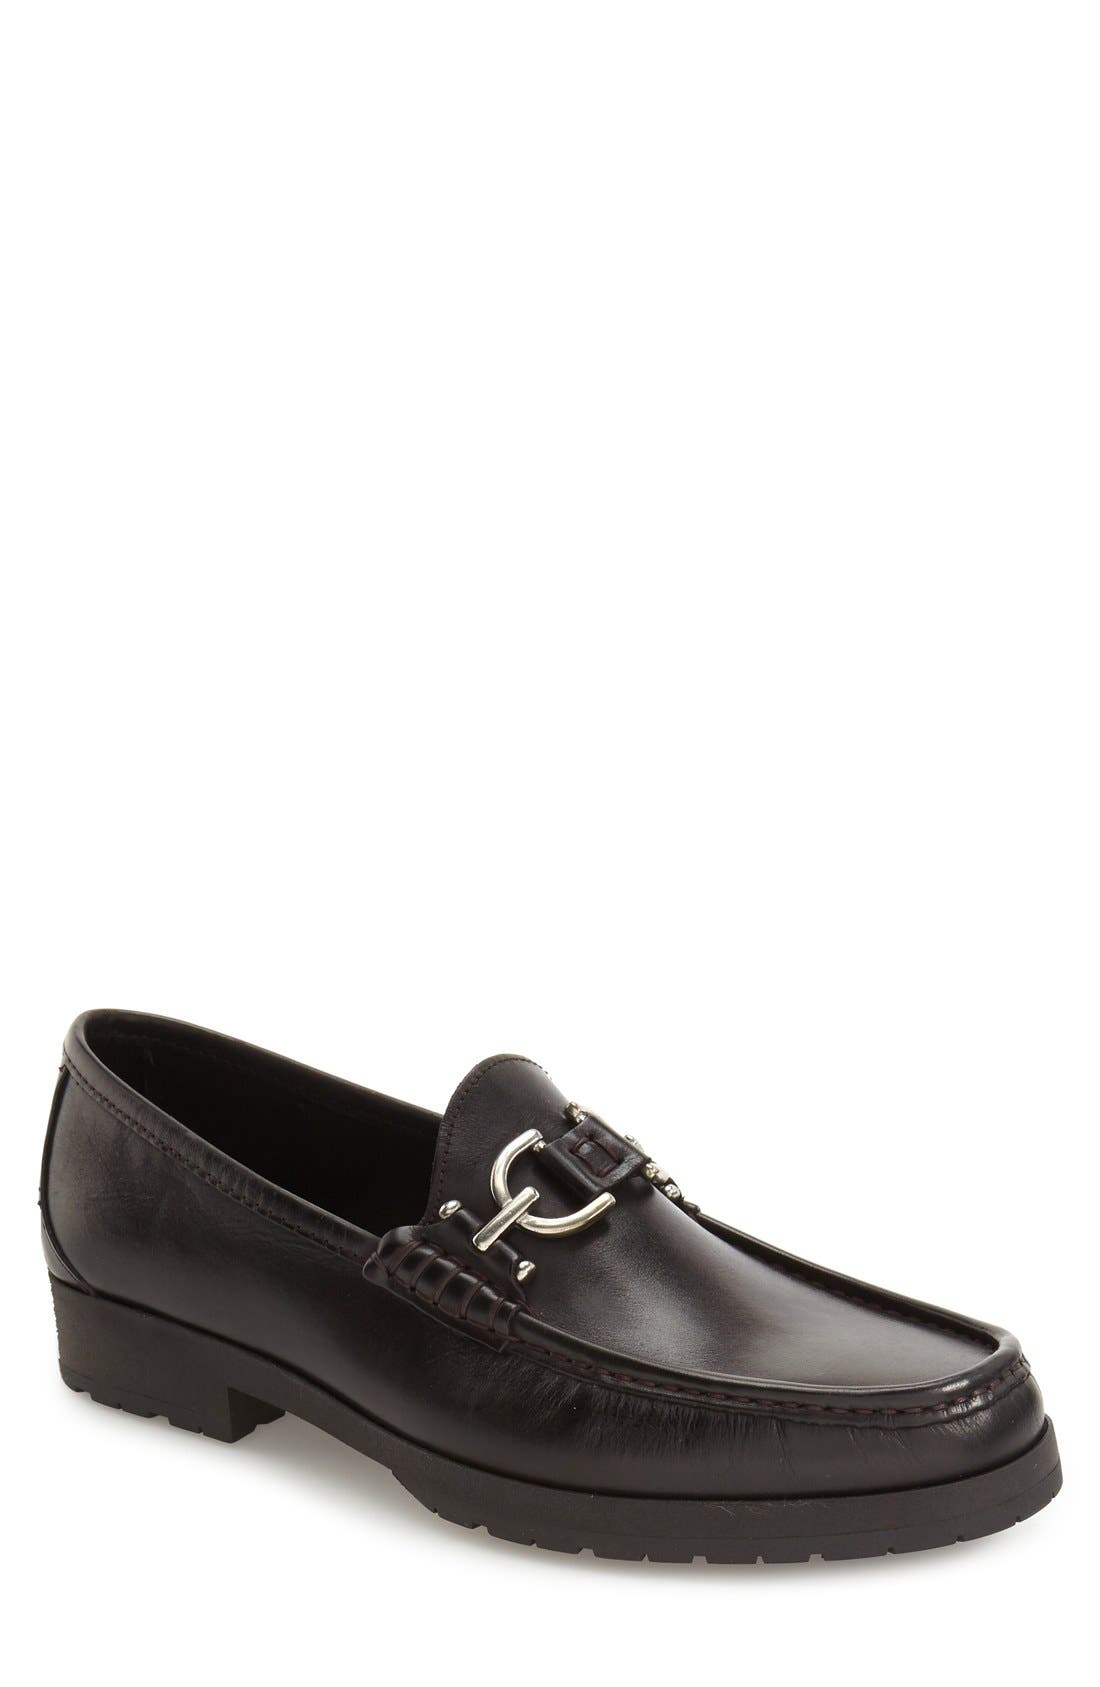 Lelio Bit Loafer,                             Alternate thumbnail 5, color,                             001